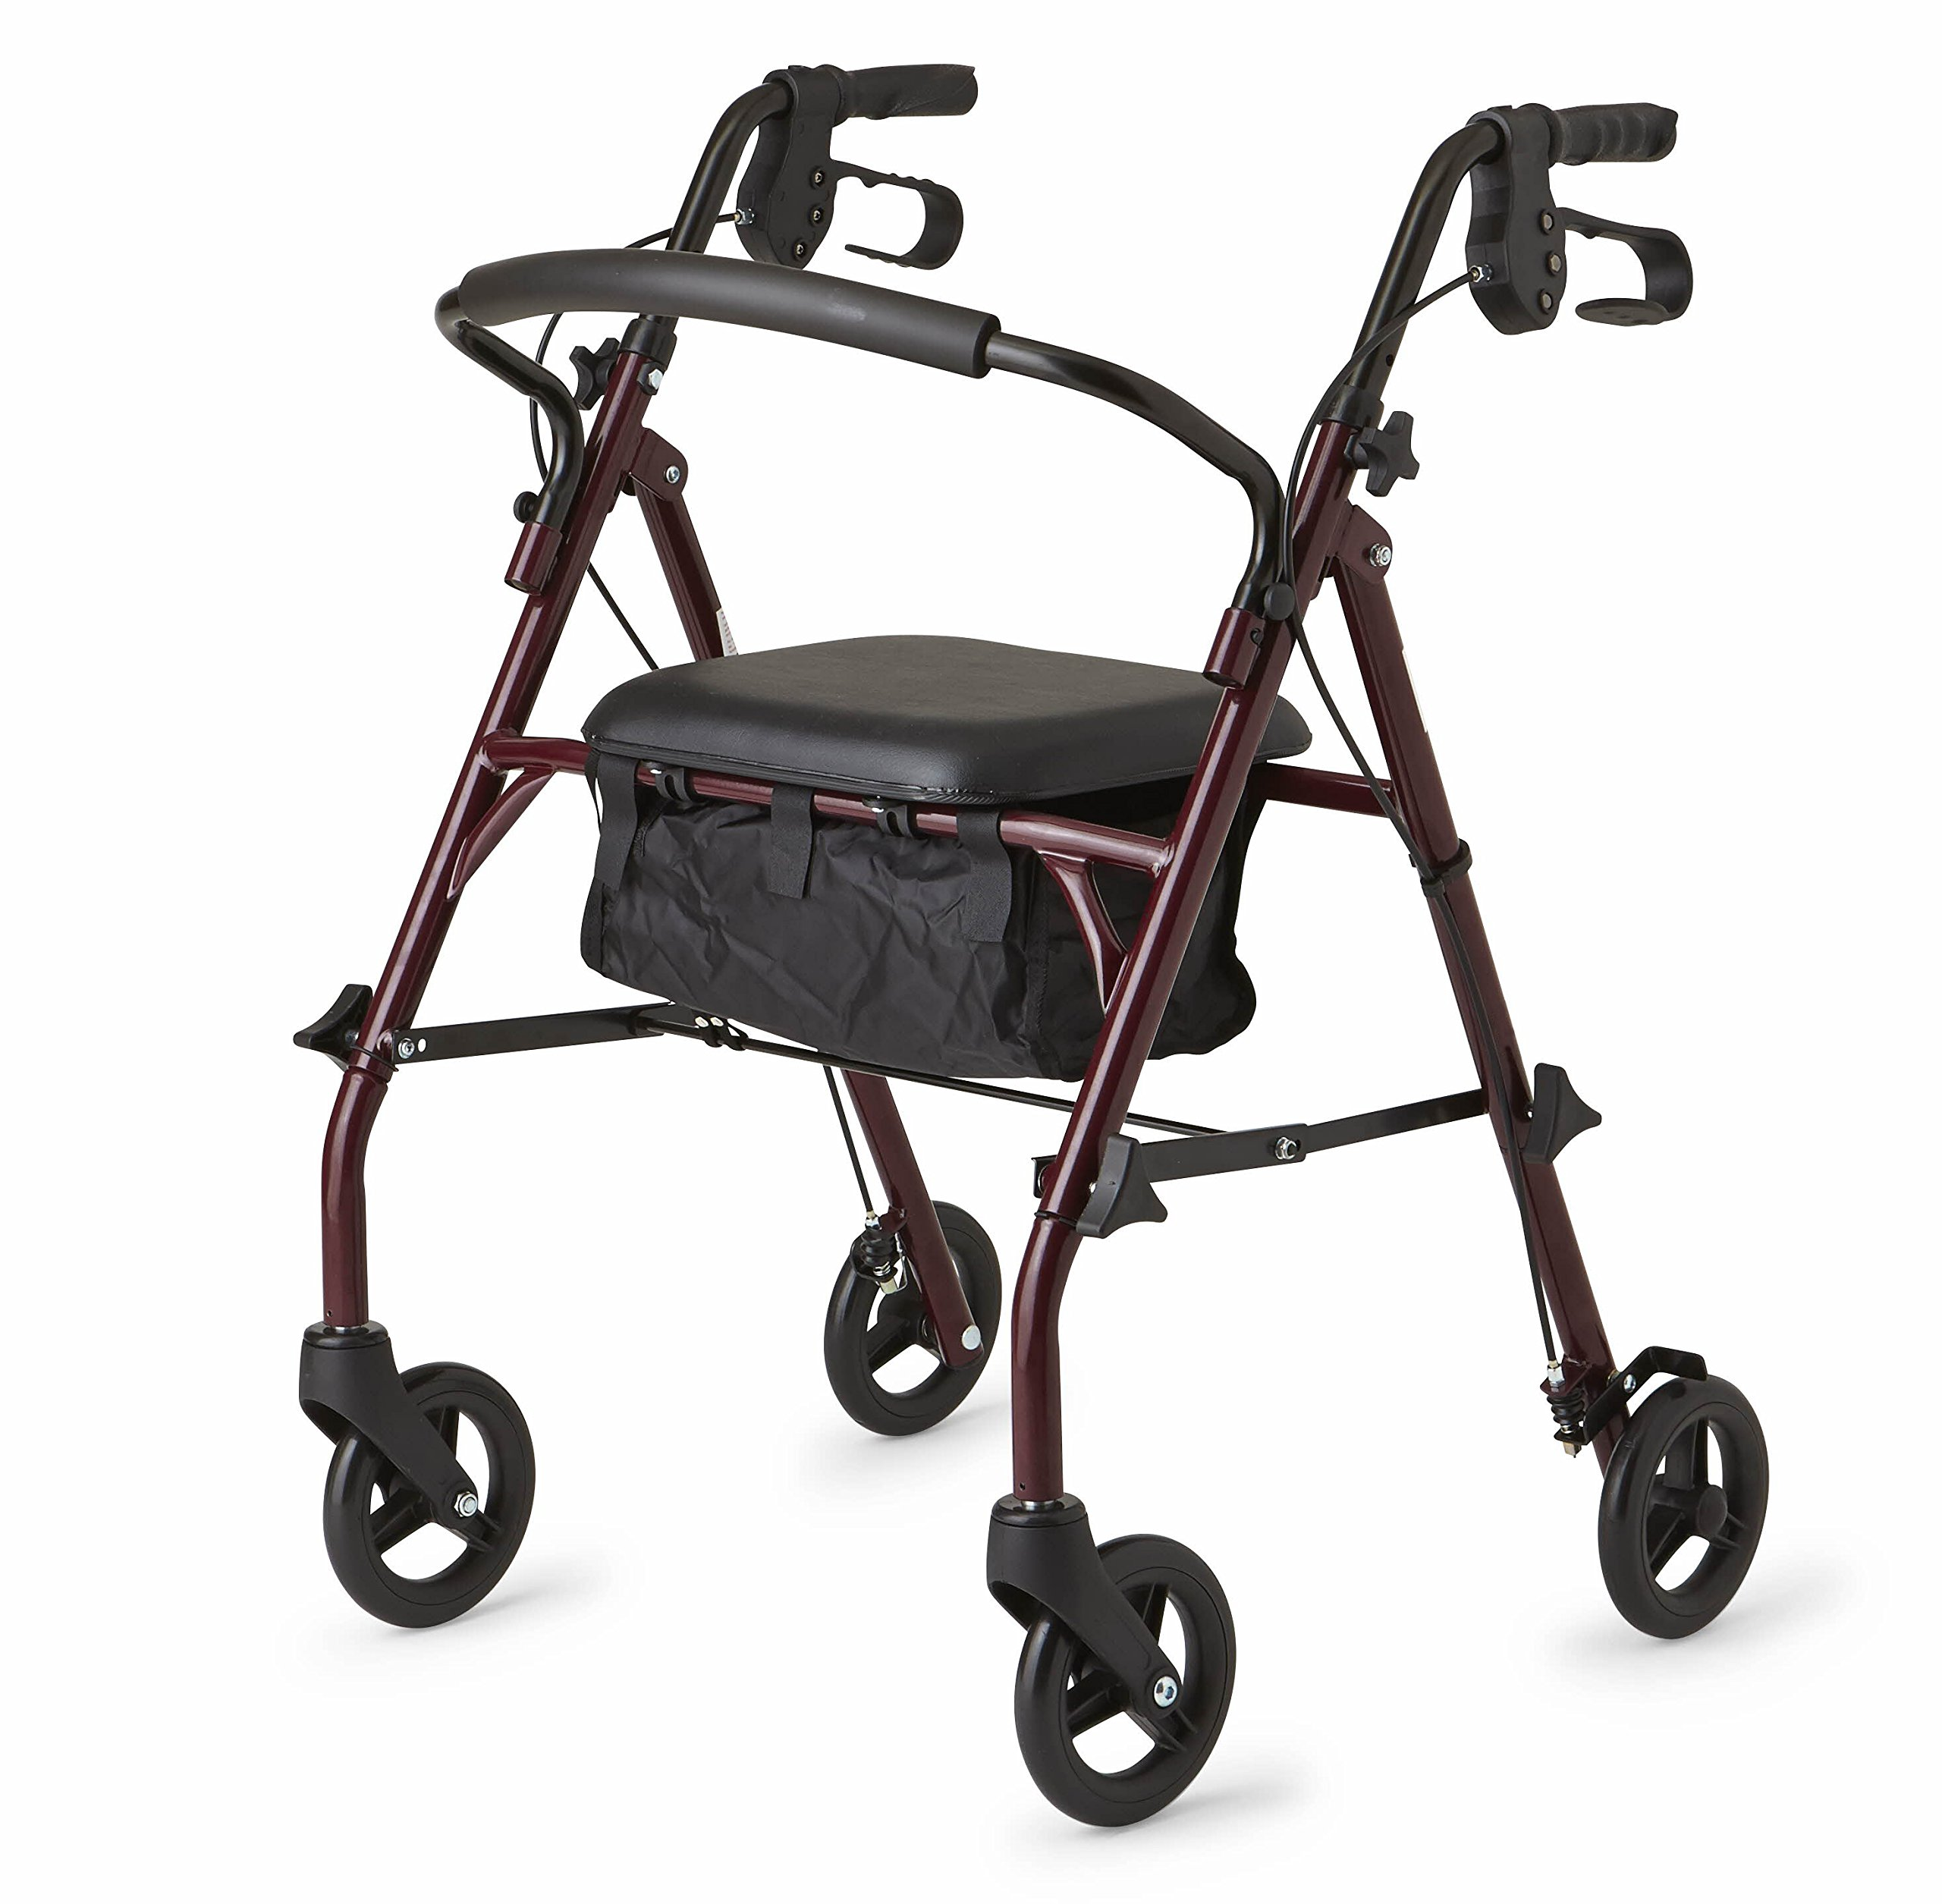 Healthcare Direct 100RA Steel Rollator Walker with 350 lb. Weight Capacity, Burgundy by Healthcare Direct